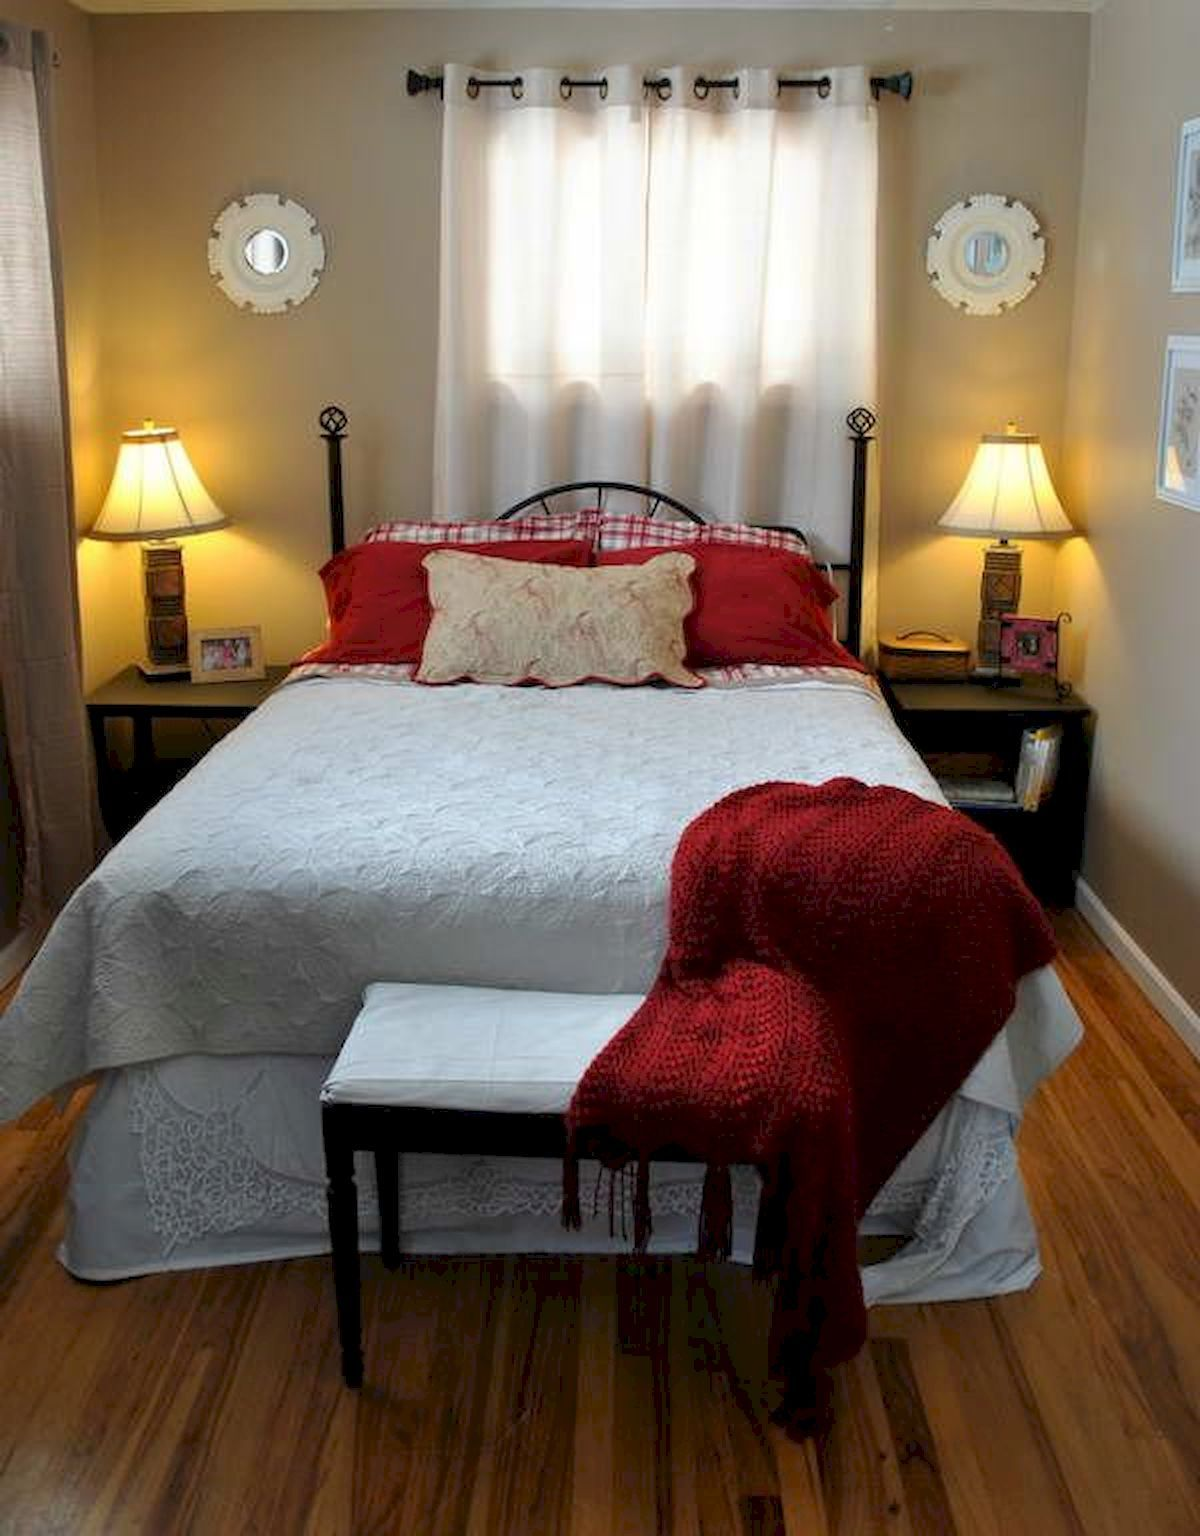 11 Awesome Small Bedroom Decorating Ideas On A Budget  SHAIROOM